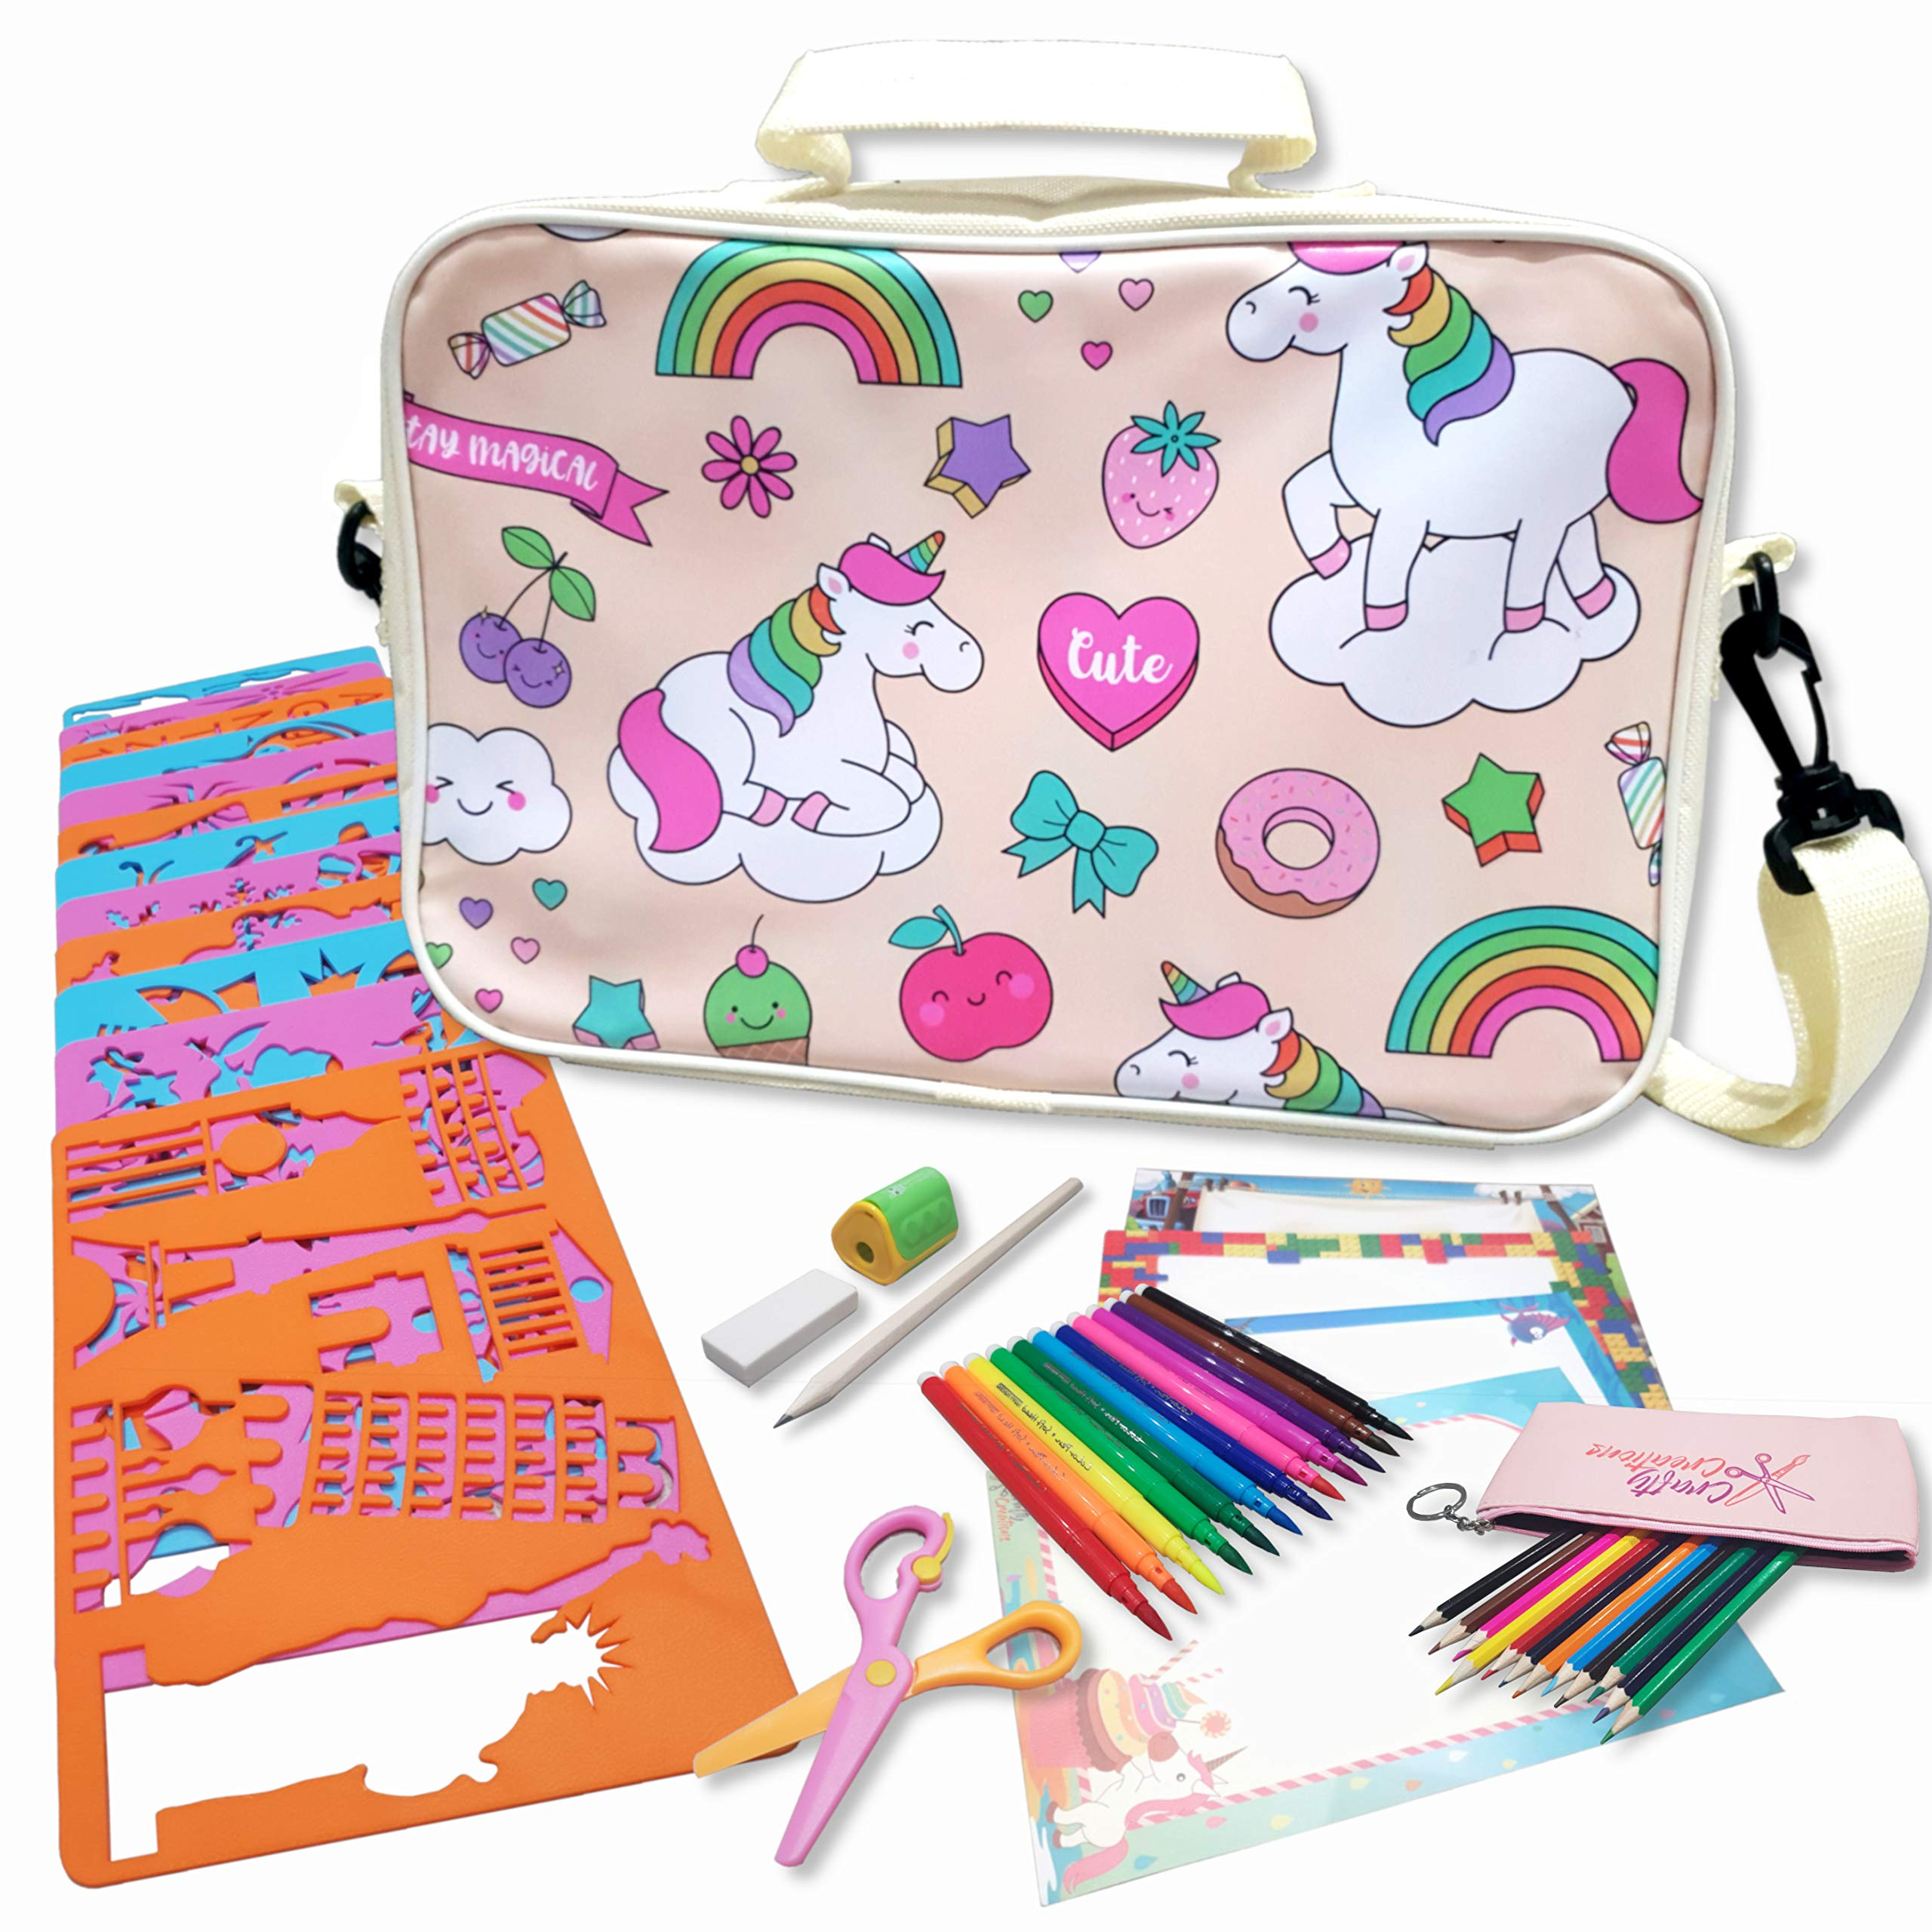 Crafty Creations Super Stencil Set - Arts and Craft Creativity Kit for Boys and Girls - Unique Trendy Unicorn Shoulder Travel Bag - Perfect Educational Activity Gift for Kids Children